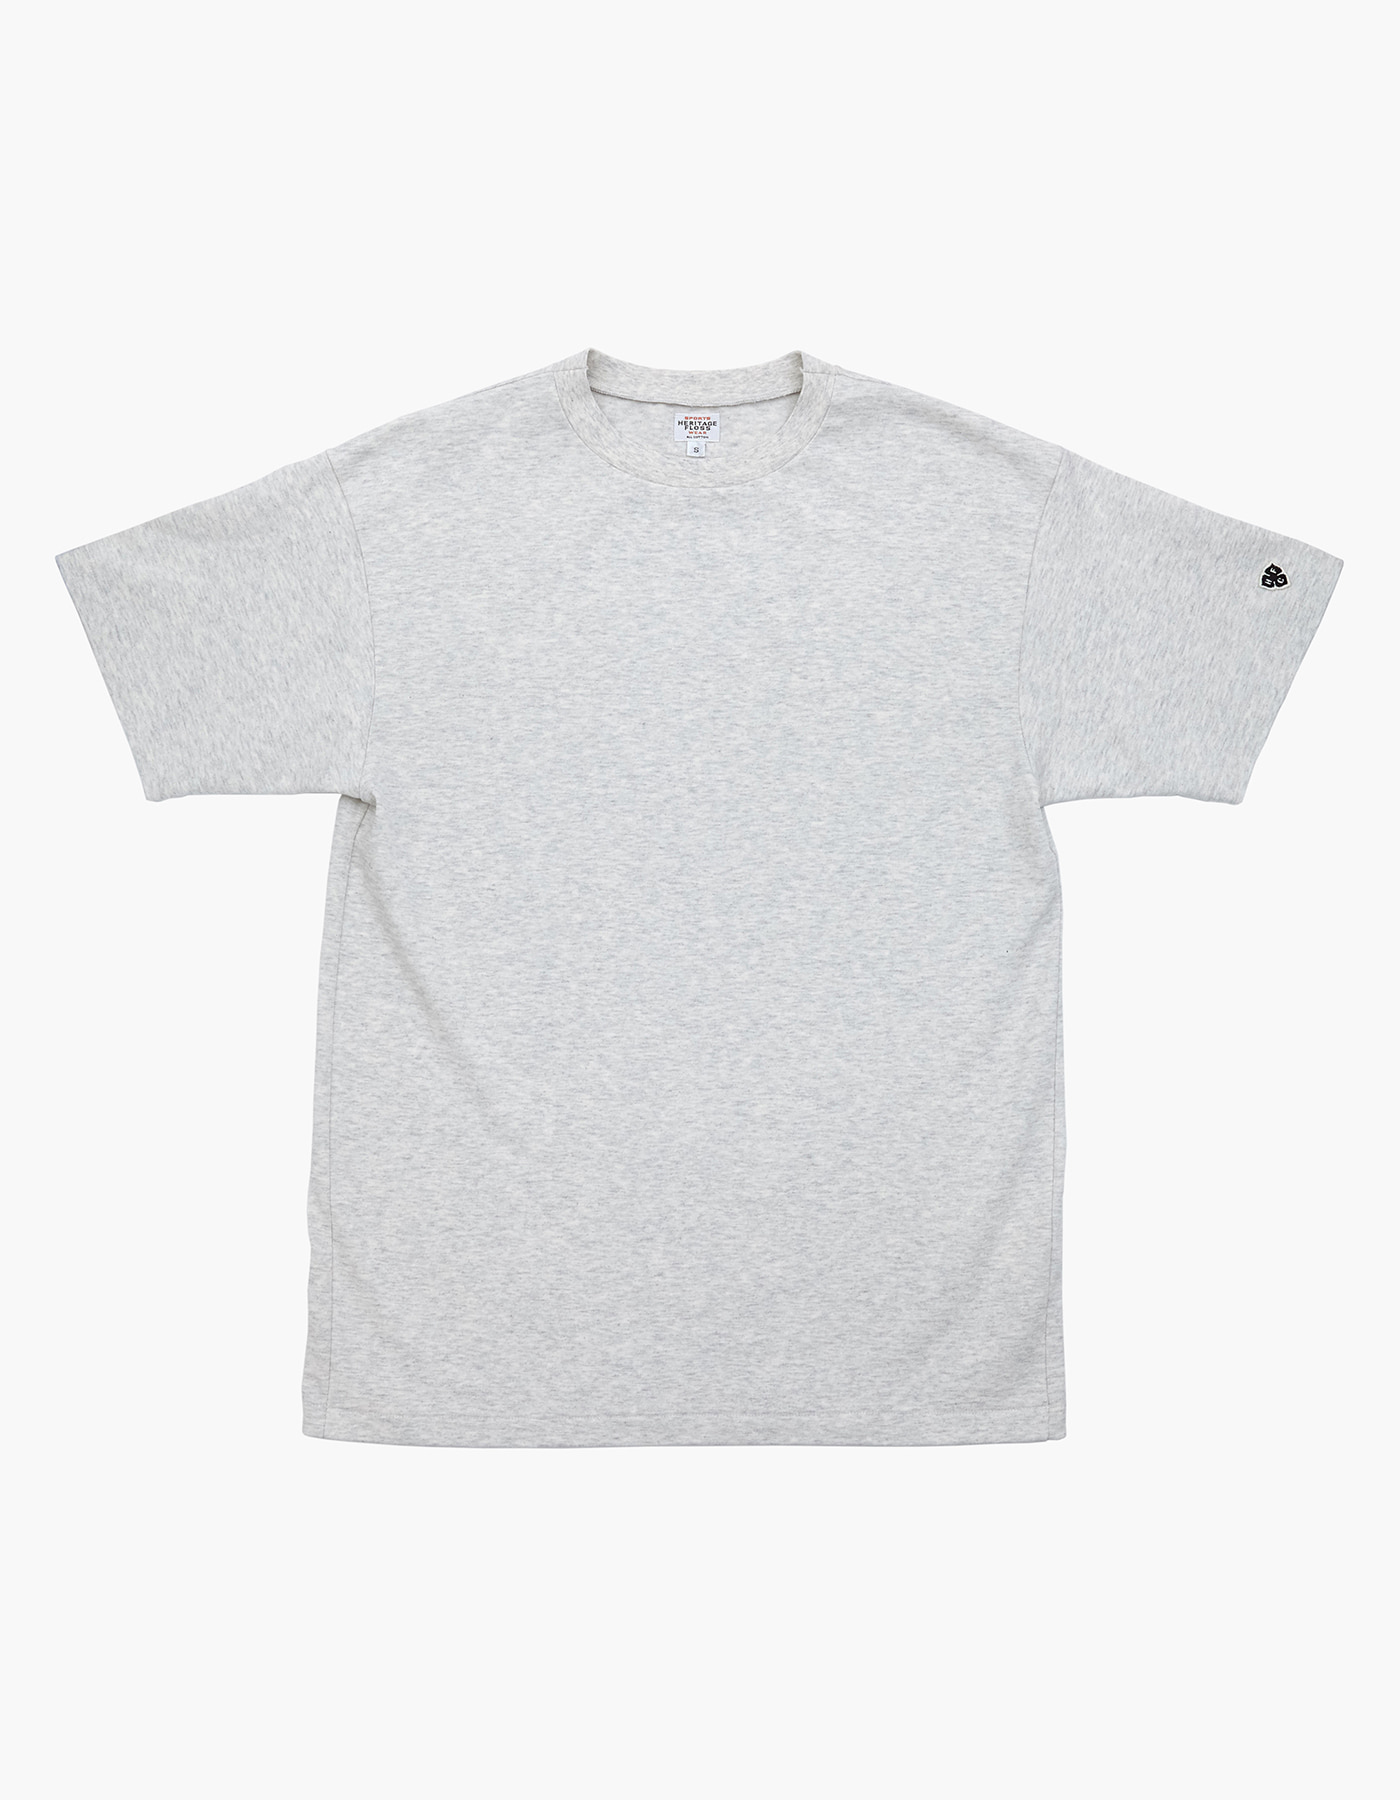 10S COMPACT YARN T-SHIRT / M.GREY(1%)